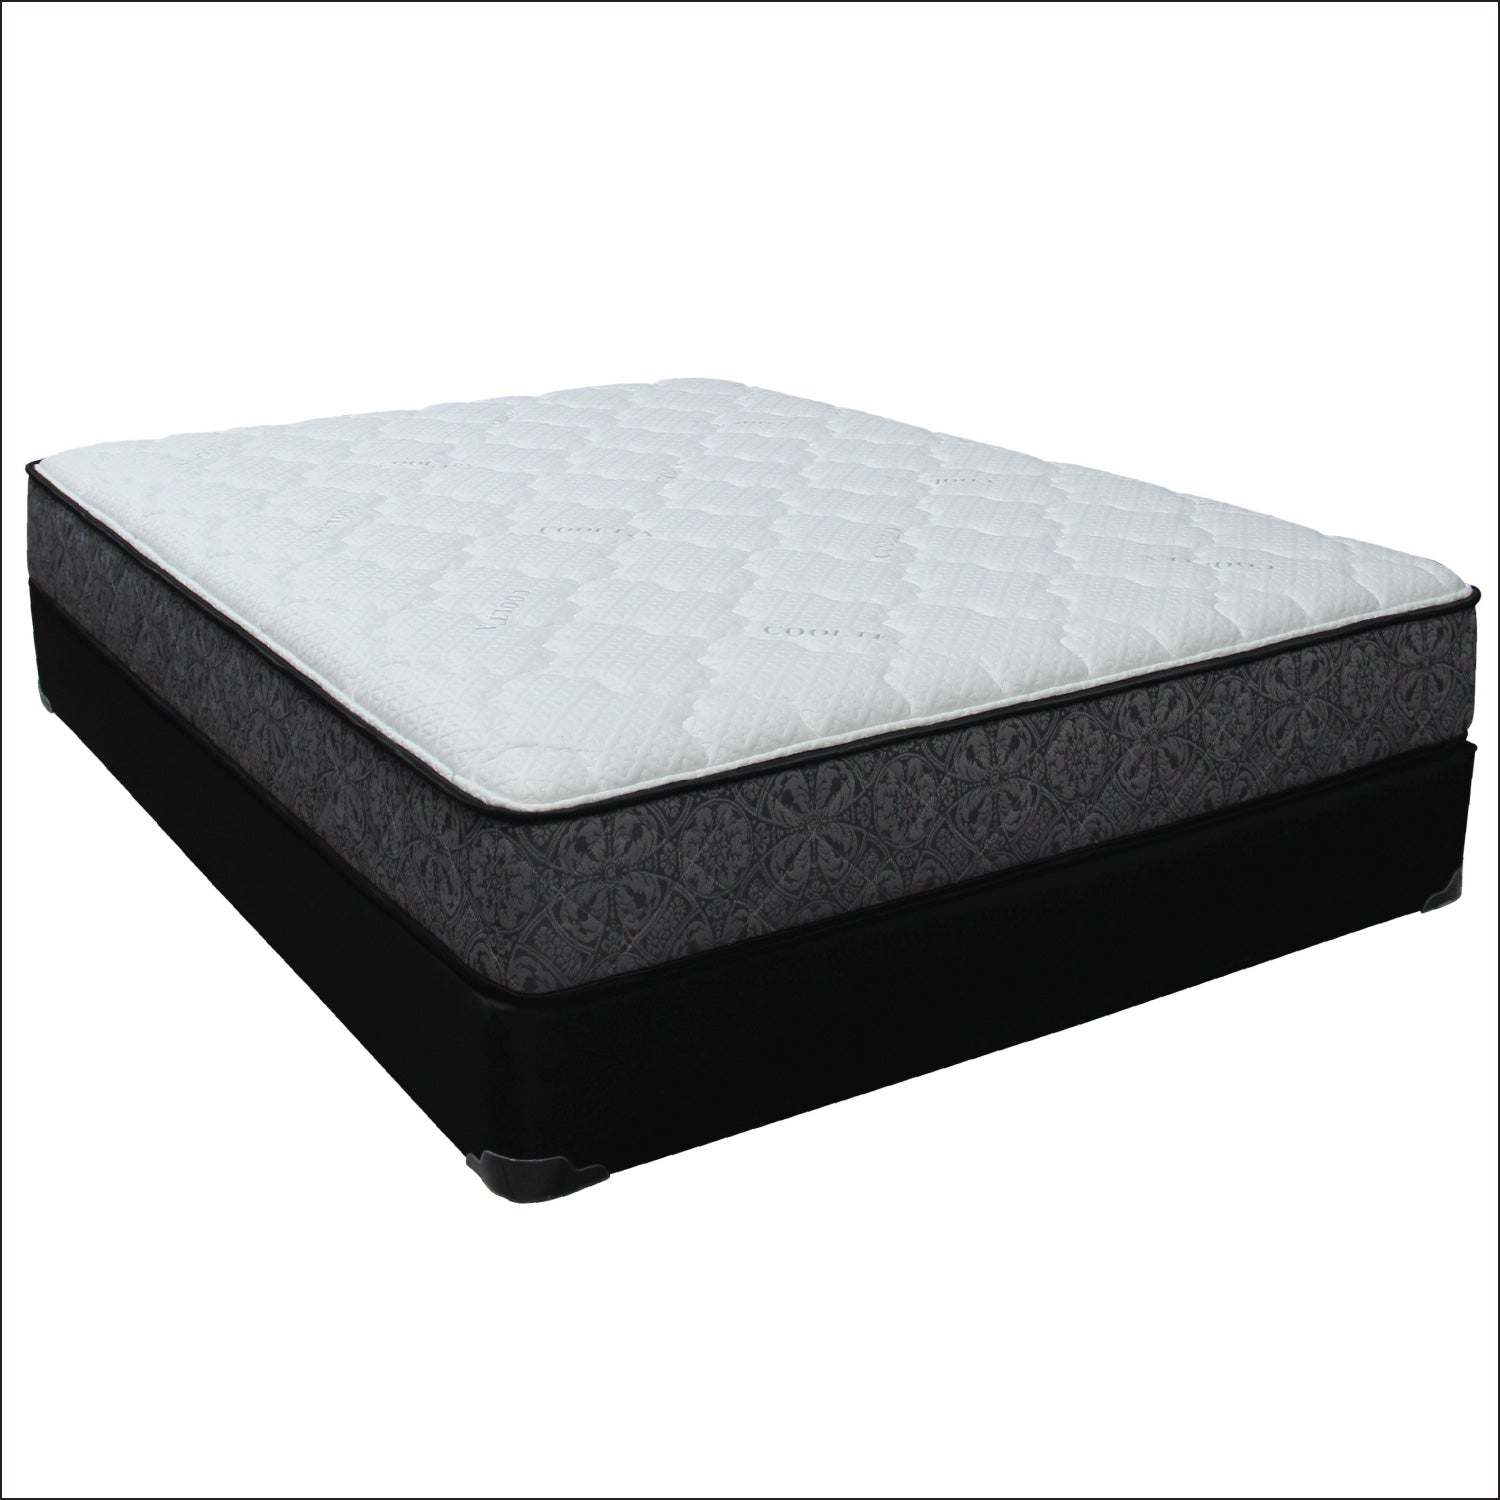 "PG 1000 10"" All Foam Mattress"